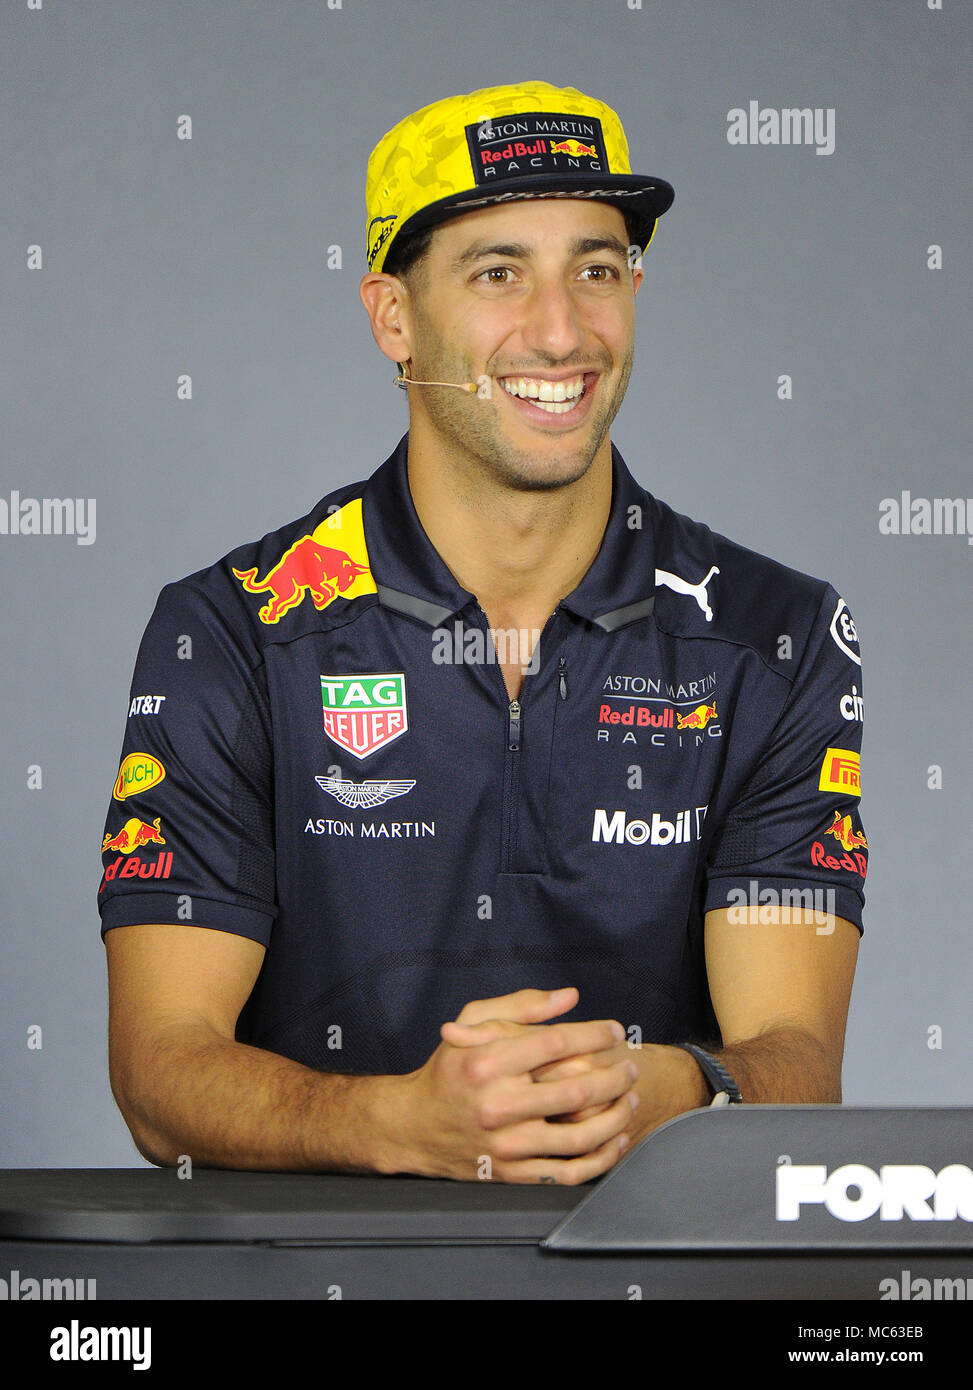 26f42448364 Daniel Ricciardo of Aston Martin Red Bull Racing. Day 1 of the 2018 Formula  1 Rolex Australian Grand Prix held at The circuit of Albert Park